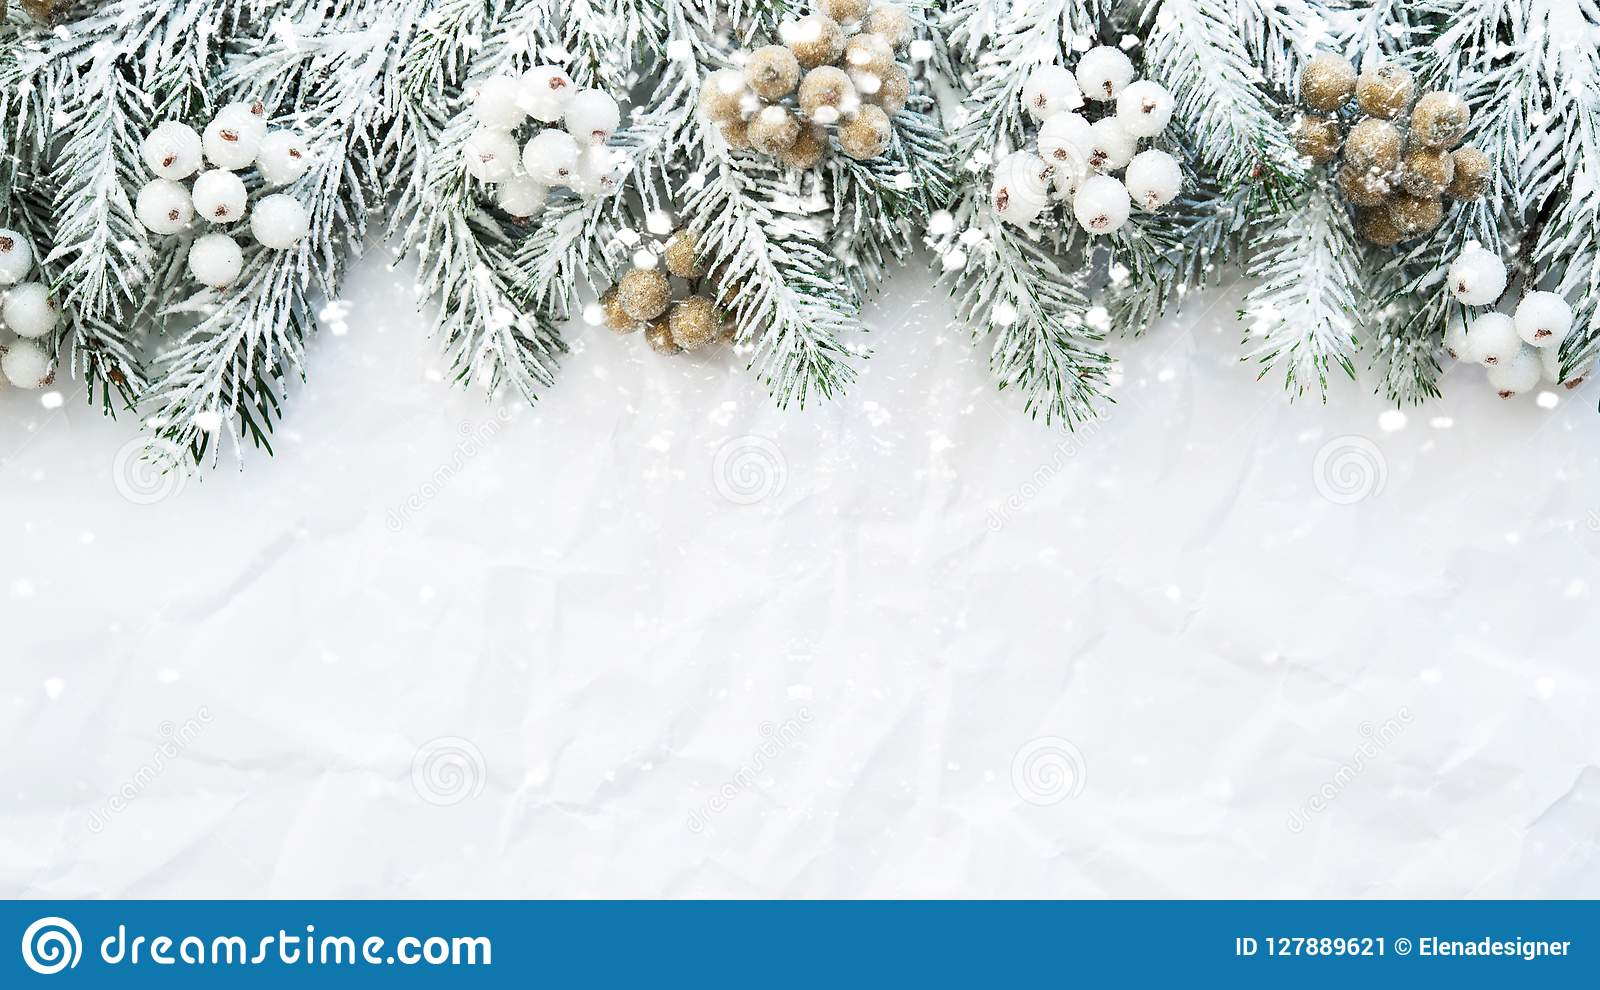 christmas background with xmas tree on white creased background merry christmas greeting card frame banner stock image image of decoration flat 127889621 https www dreamstime com christmas background xmas tree white creased merry greeting card frame banner winter holiday theme happy new year space image127889621